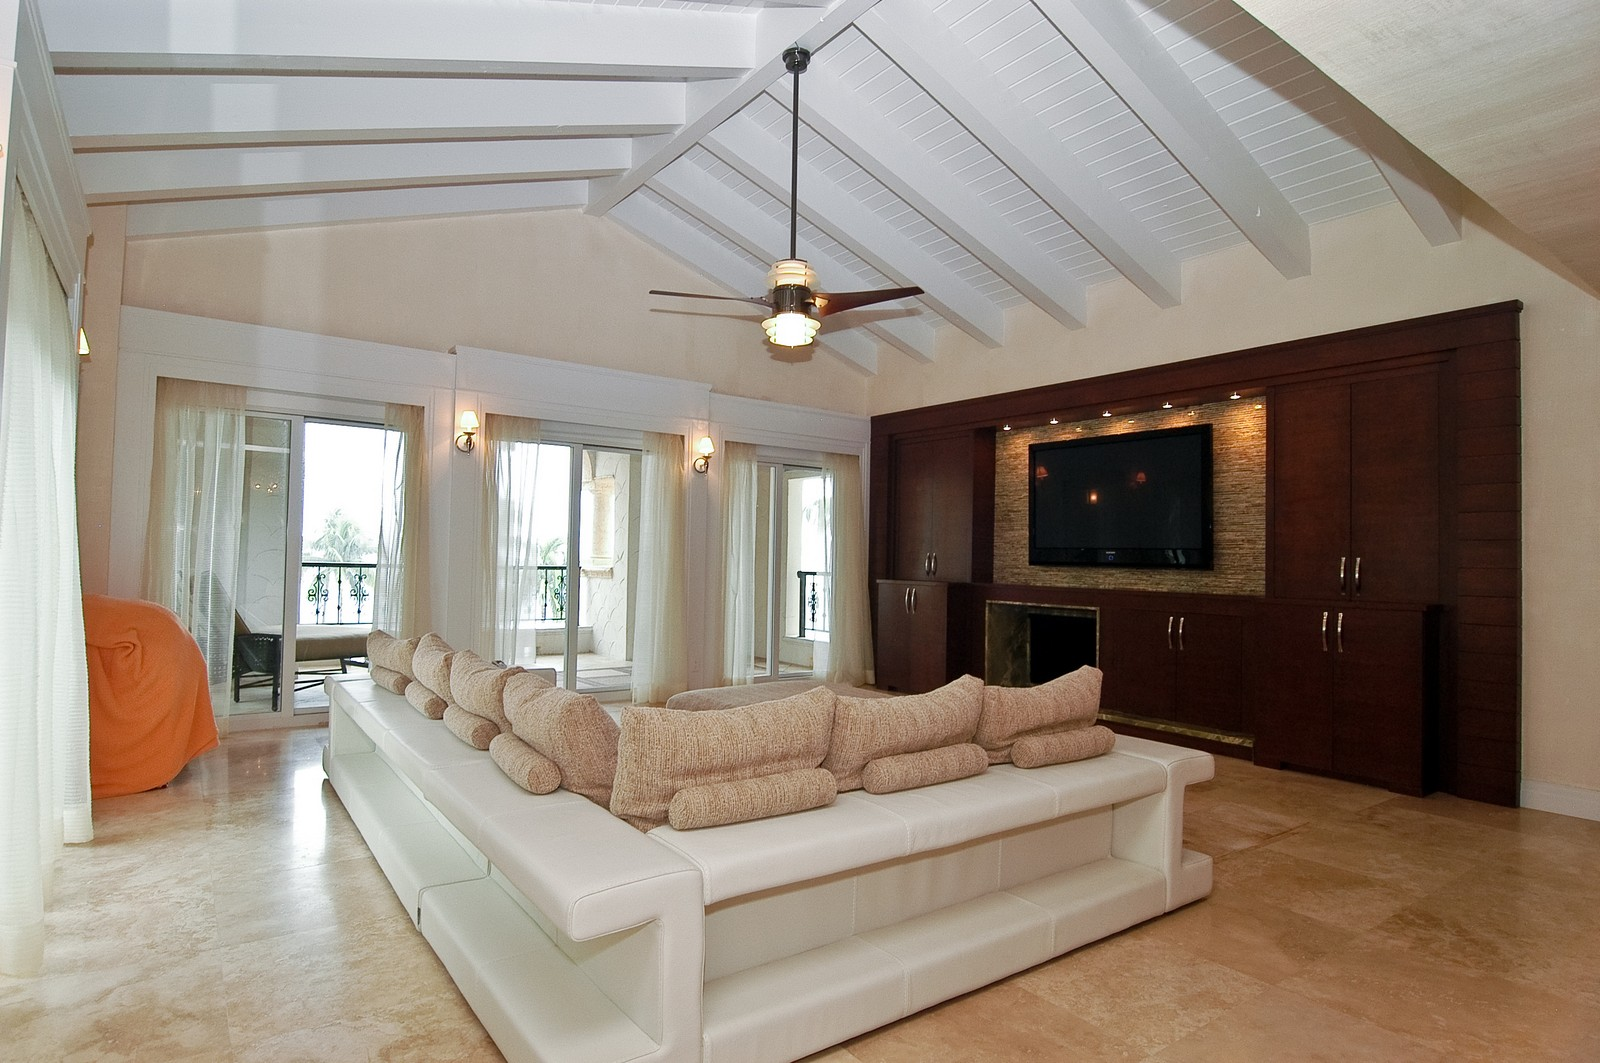 Real Estate Photography - 2331 Fish Island Dr, Fisher Island, FL, 33109 - Living Room